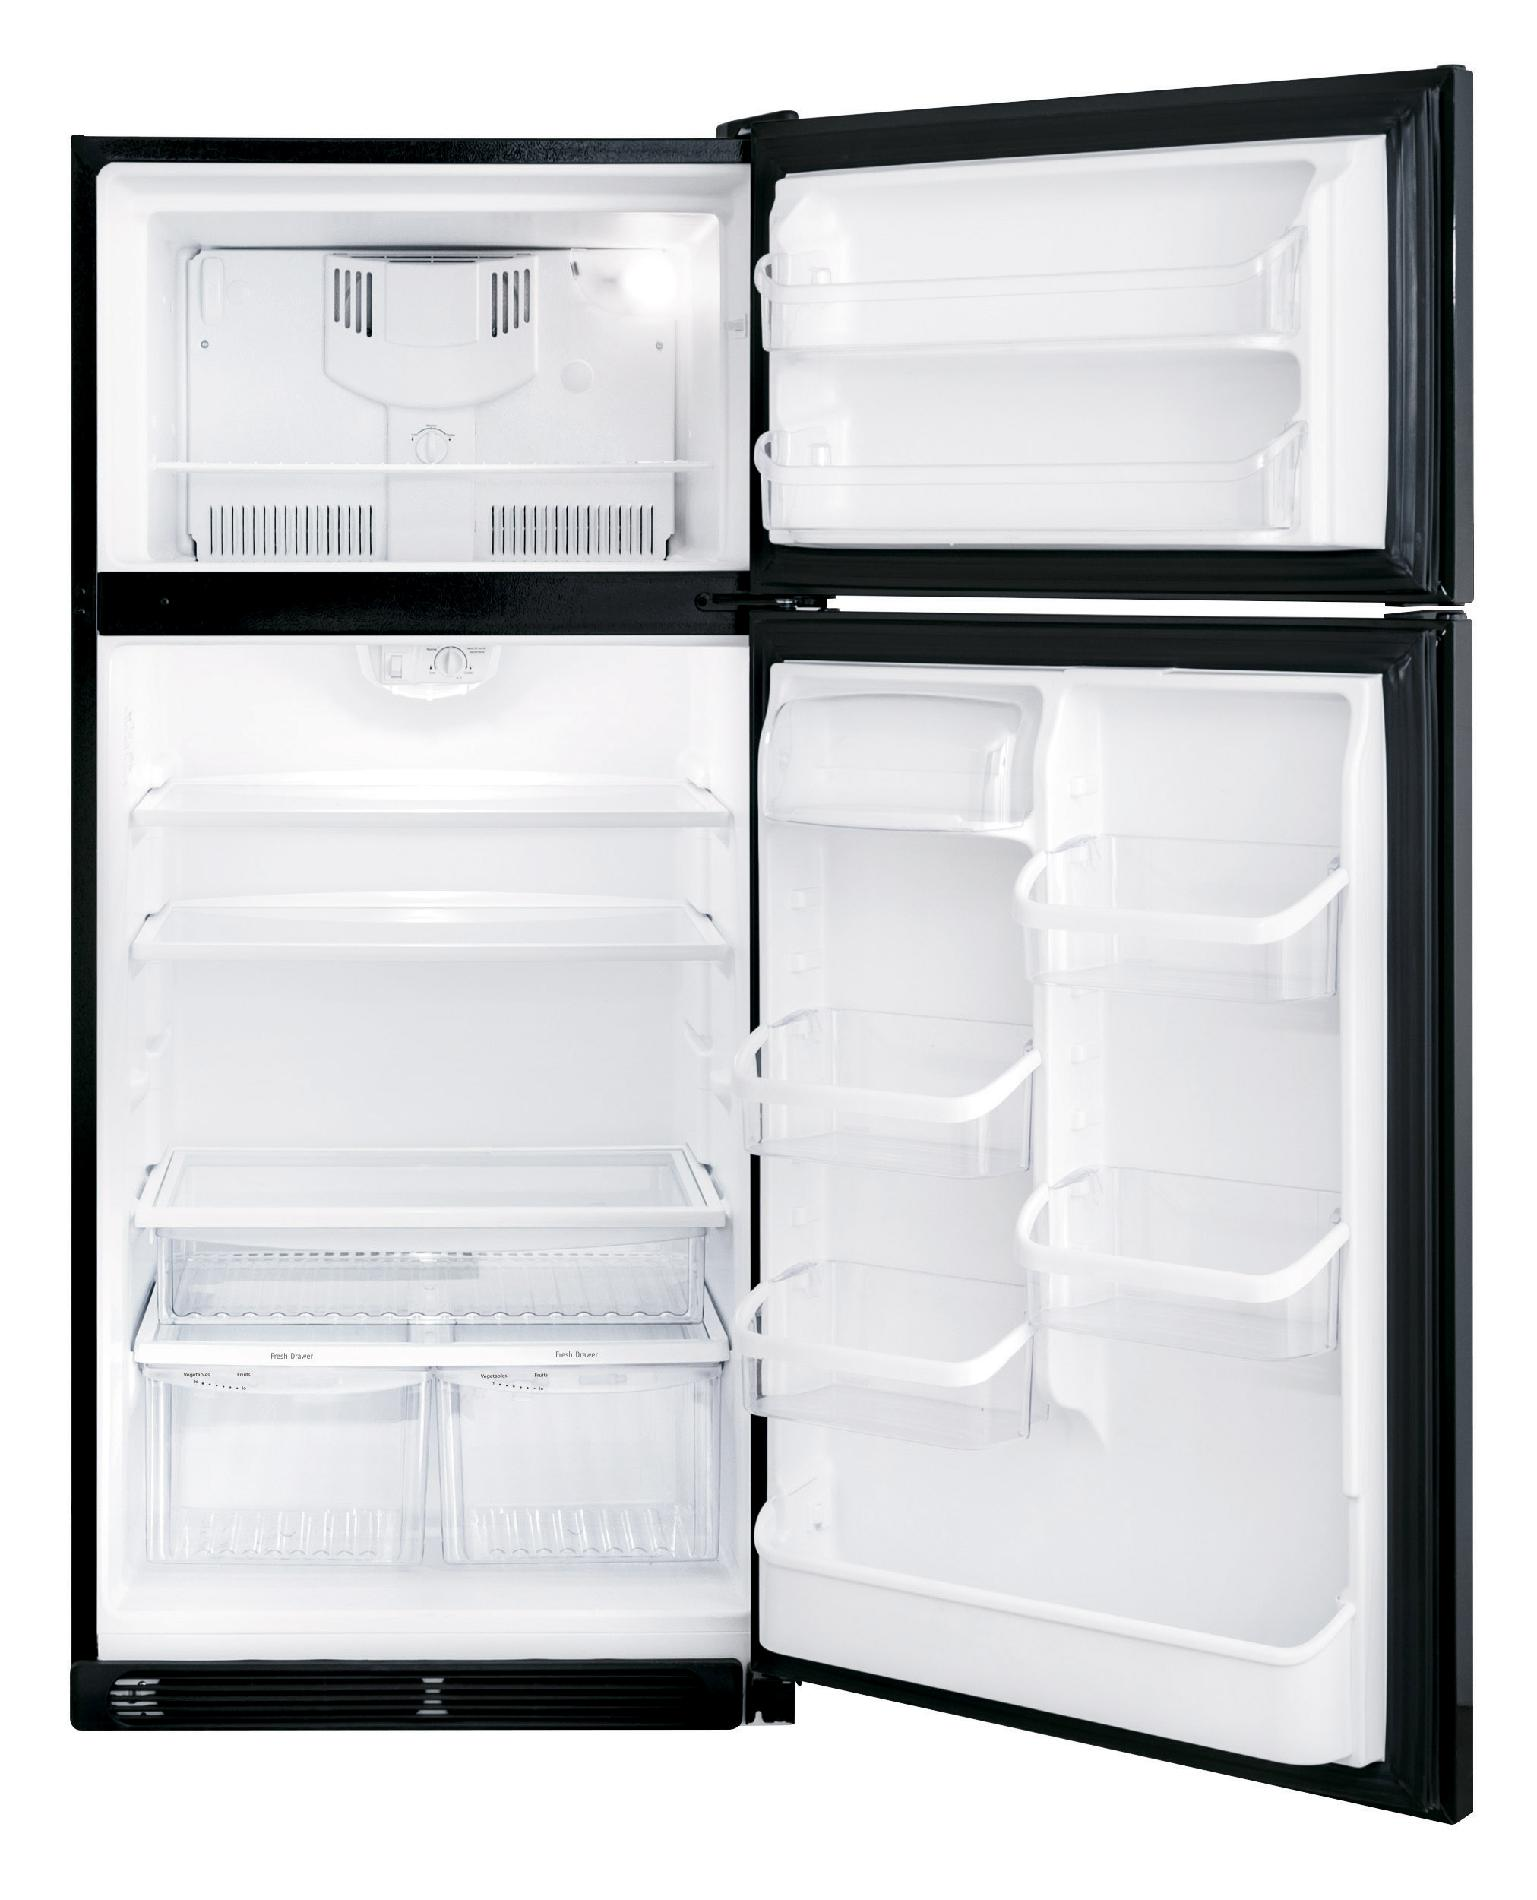 Frigidaire Gallery Gallery 18.3 cu. ft. Top-Freezer Refrigerator - Ebony Black